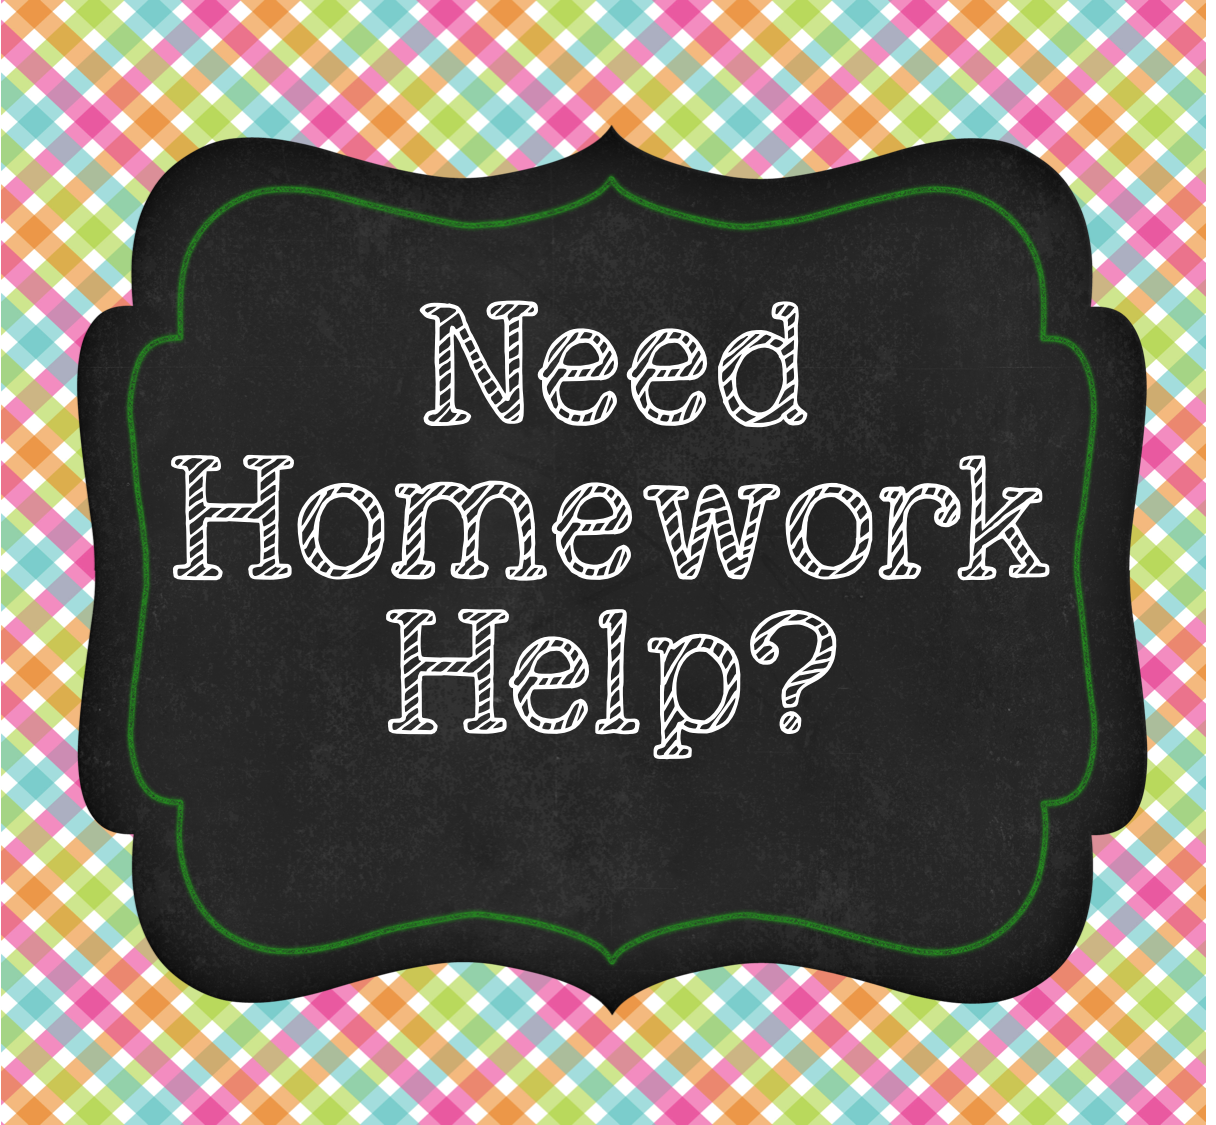 Homework help writing a biography